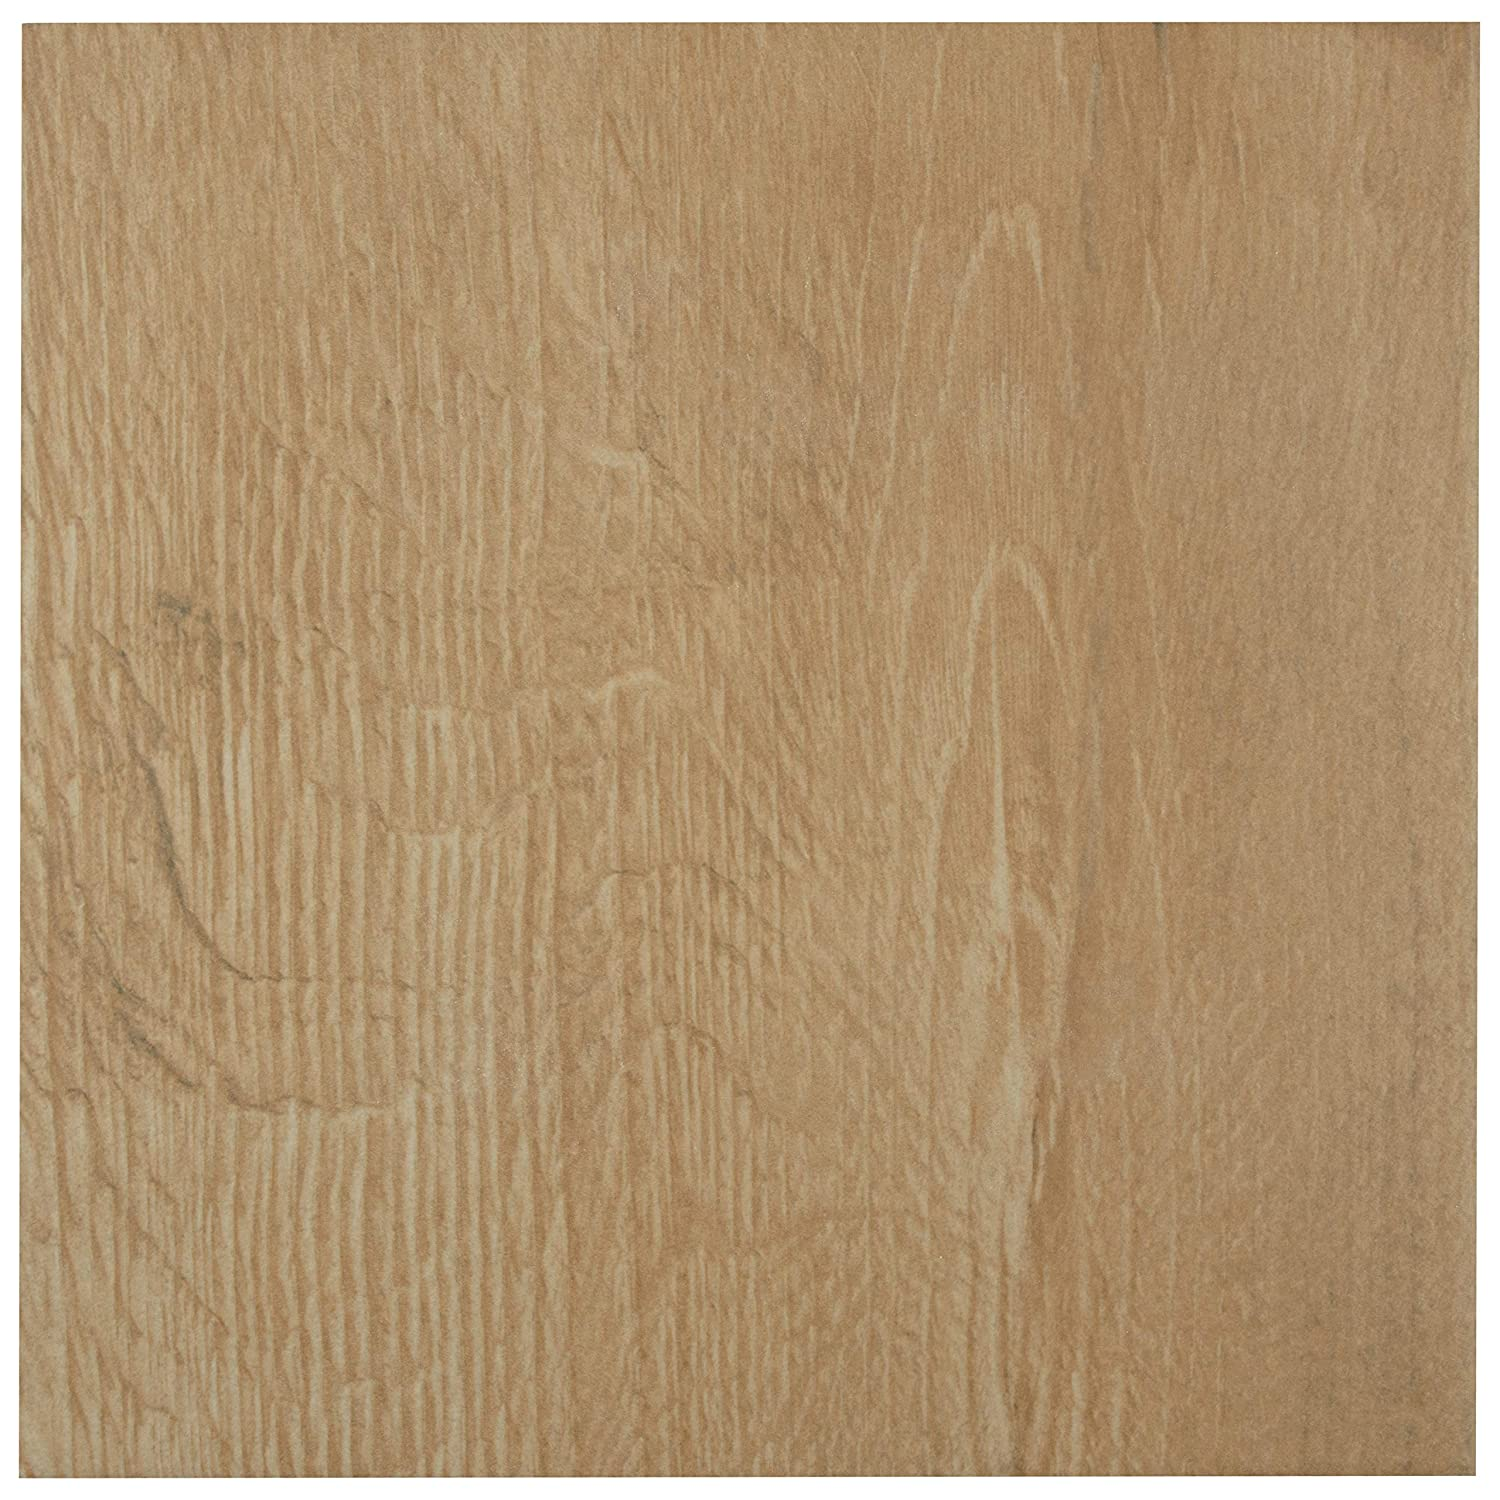 SomerTile FCD10PWG Padera Porcelain Floor and Wall Tile 9.5 x 9.5 Brown//Beige 9.5 x 9.5